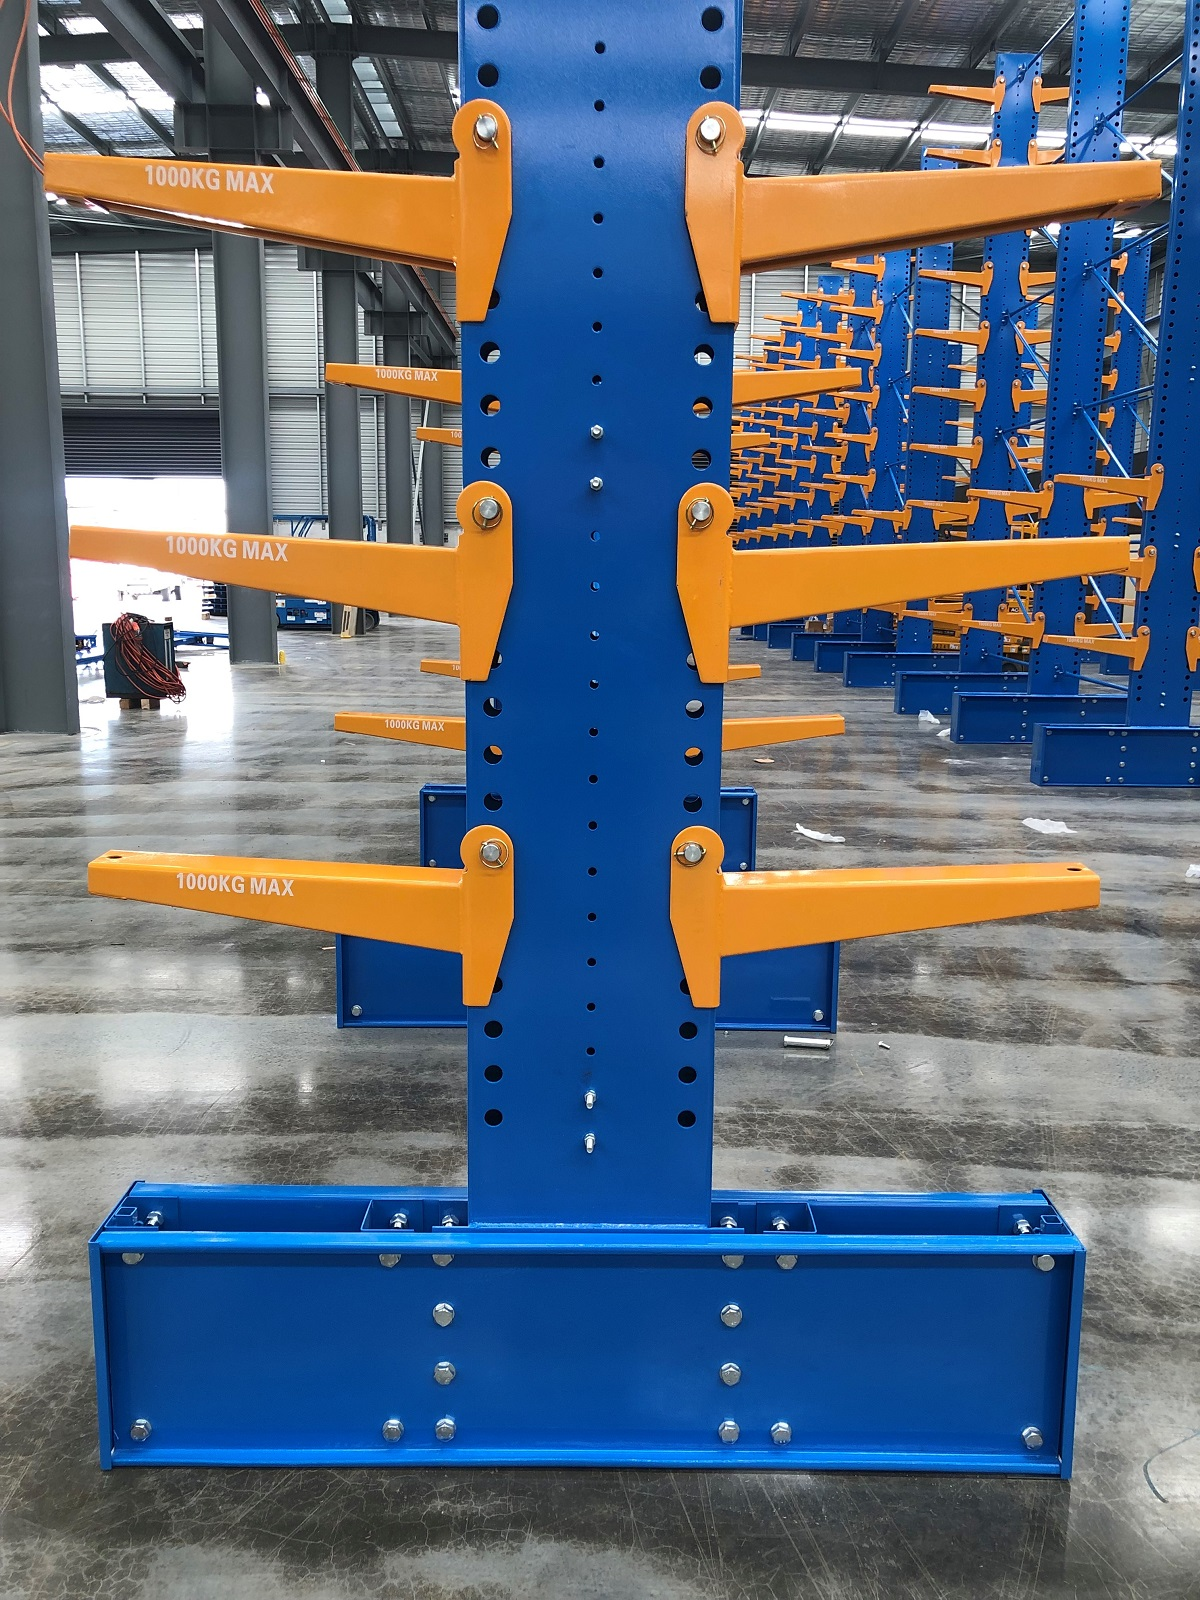 Blue and orange color storage racks placed on the big warehouse